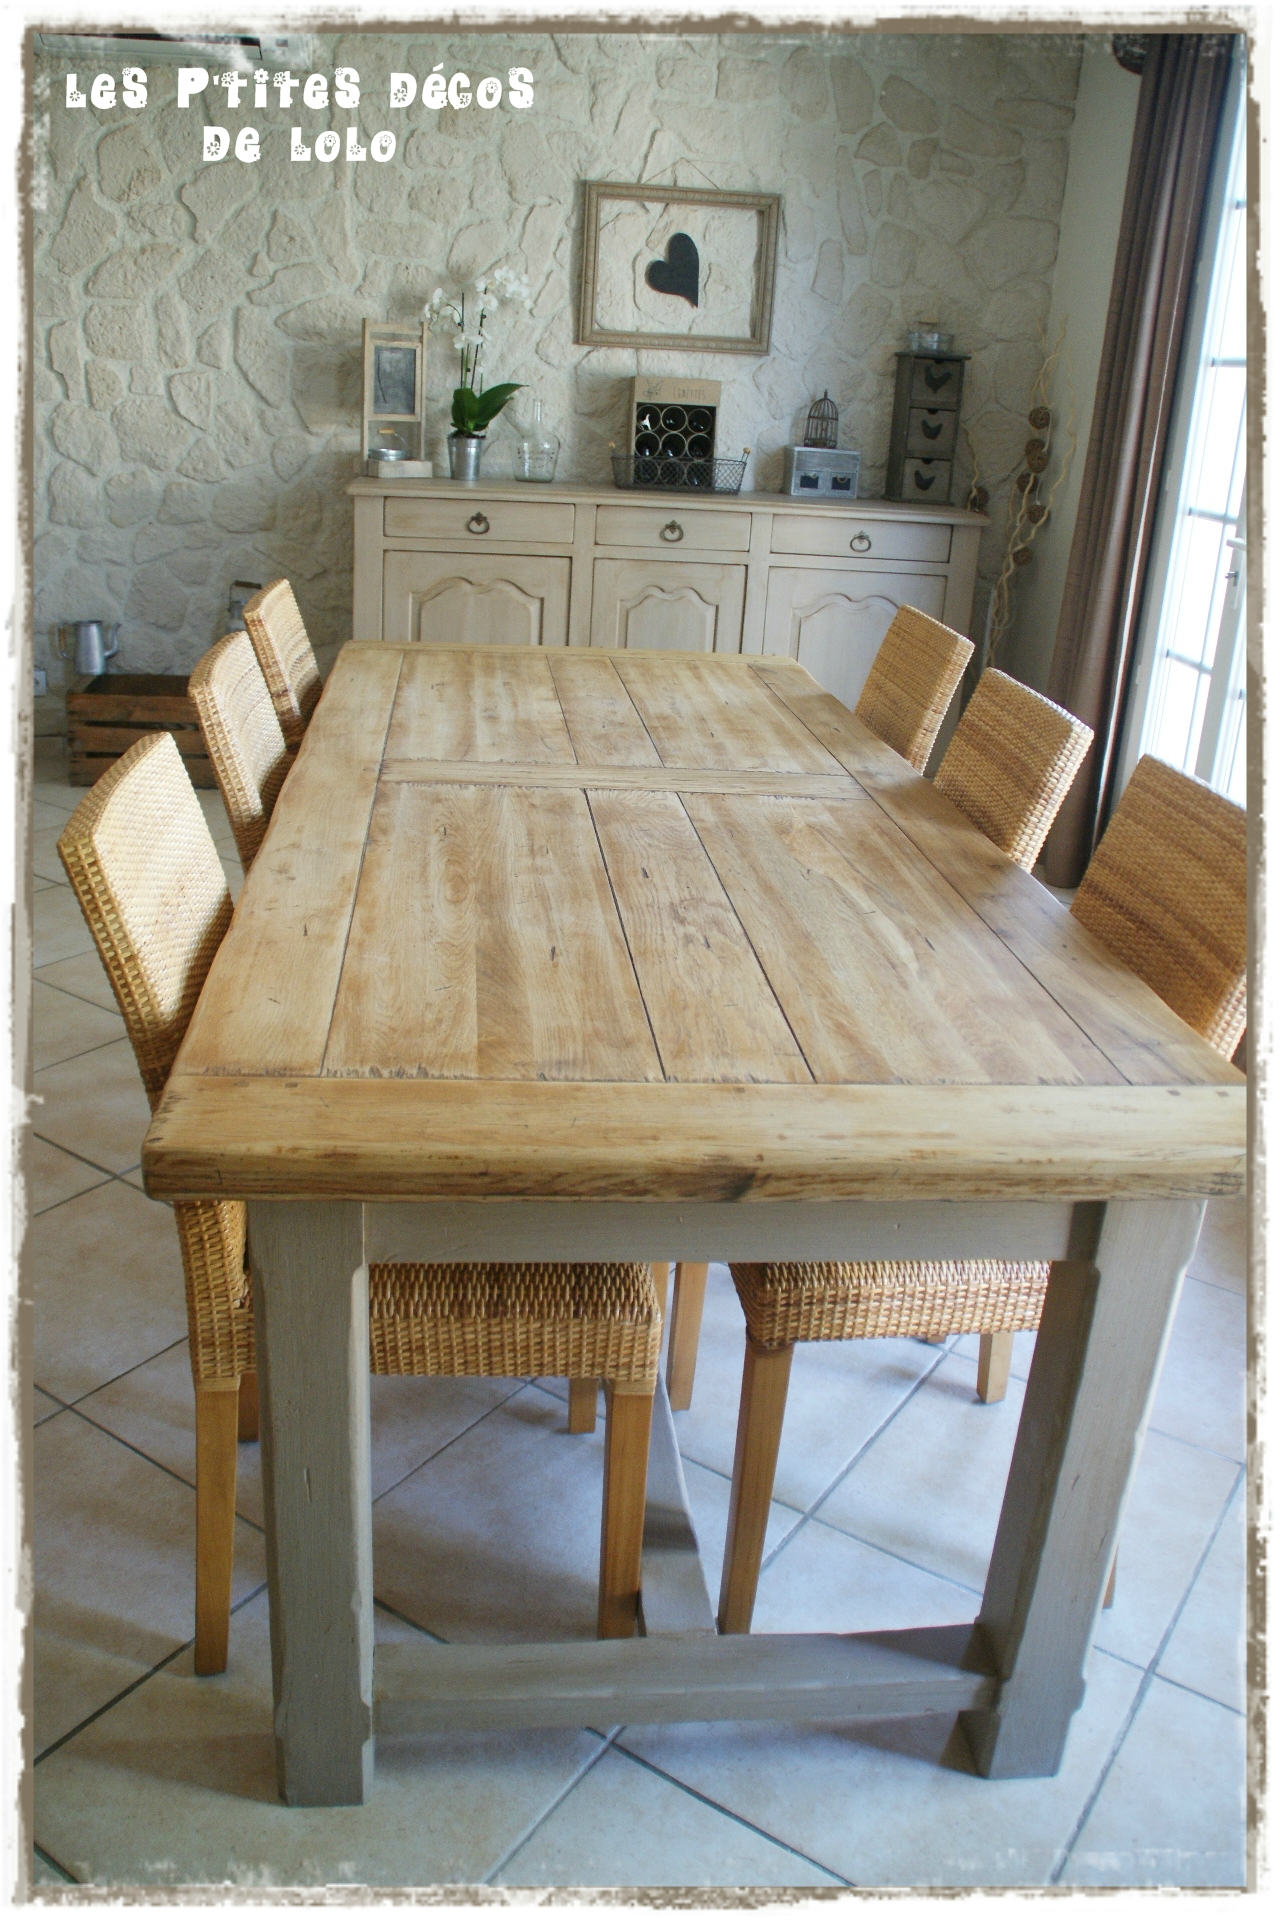 Table relook e photo de meubles et objets relook s les for Table de salle a manger fermiere